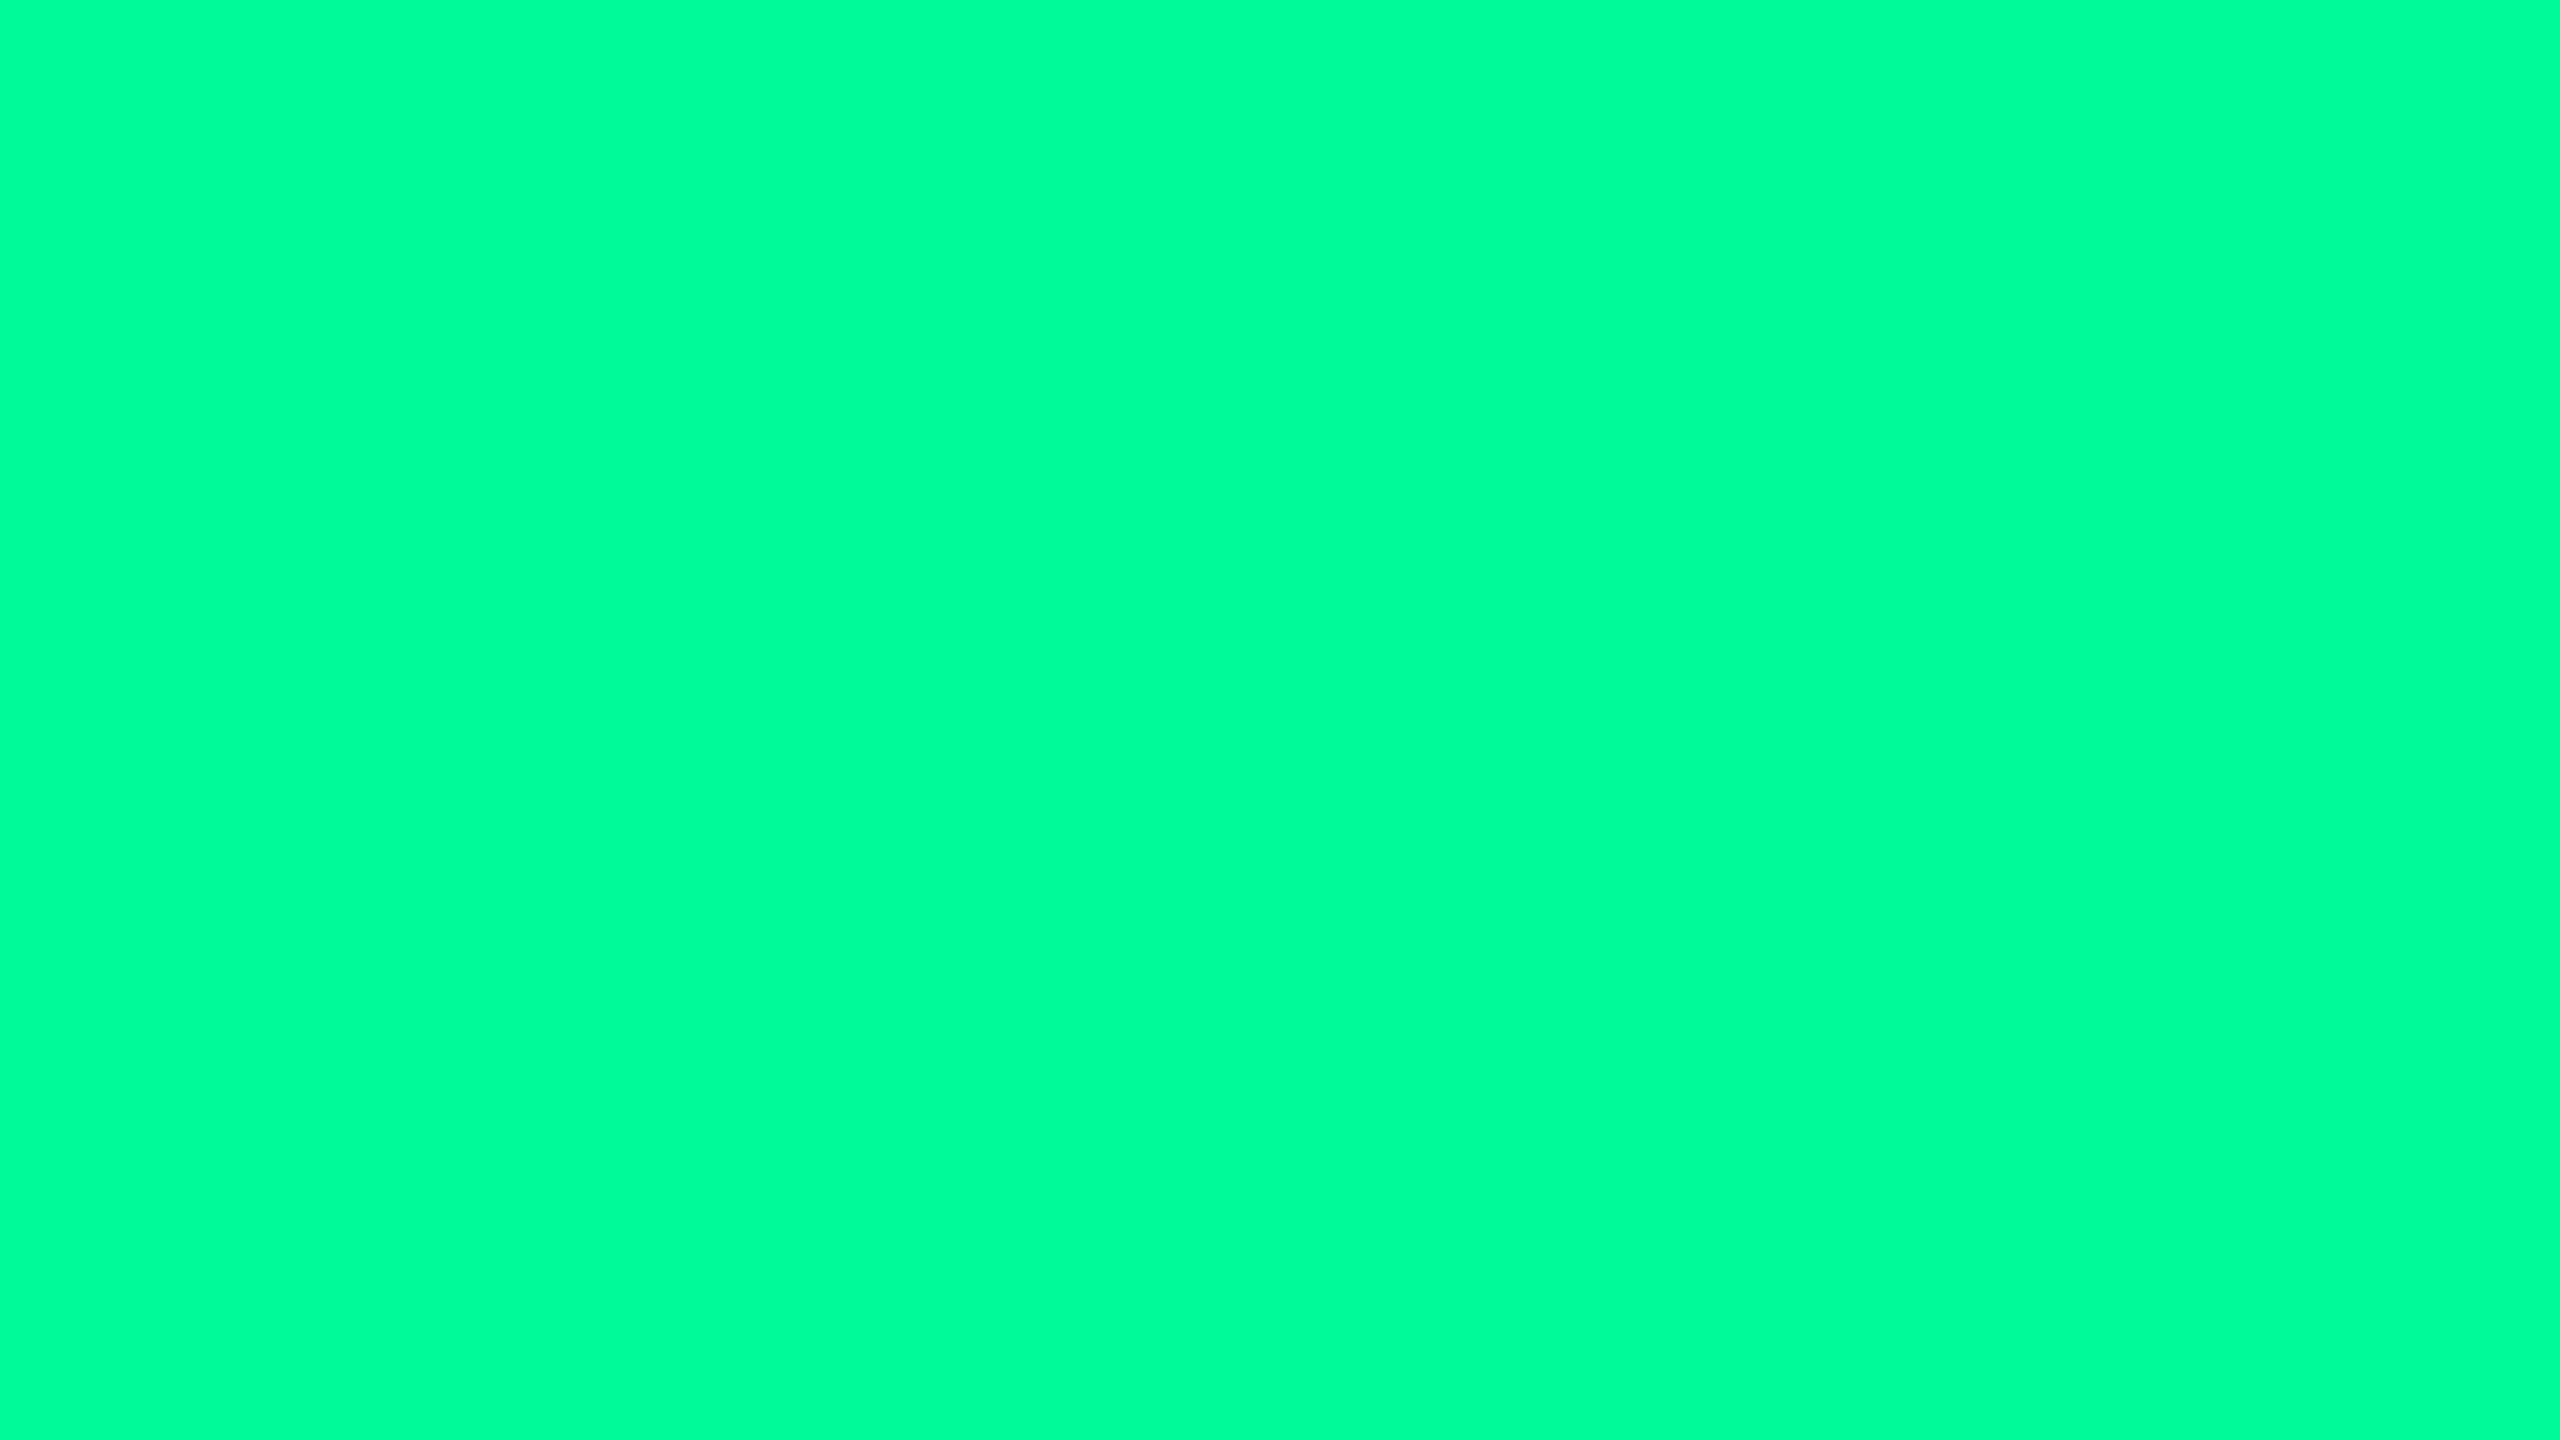 2560x1440 Medium Spring Green Solid Color Background